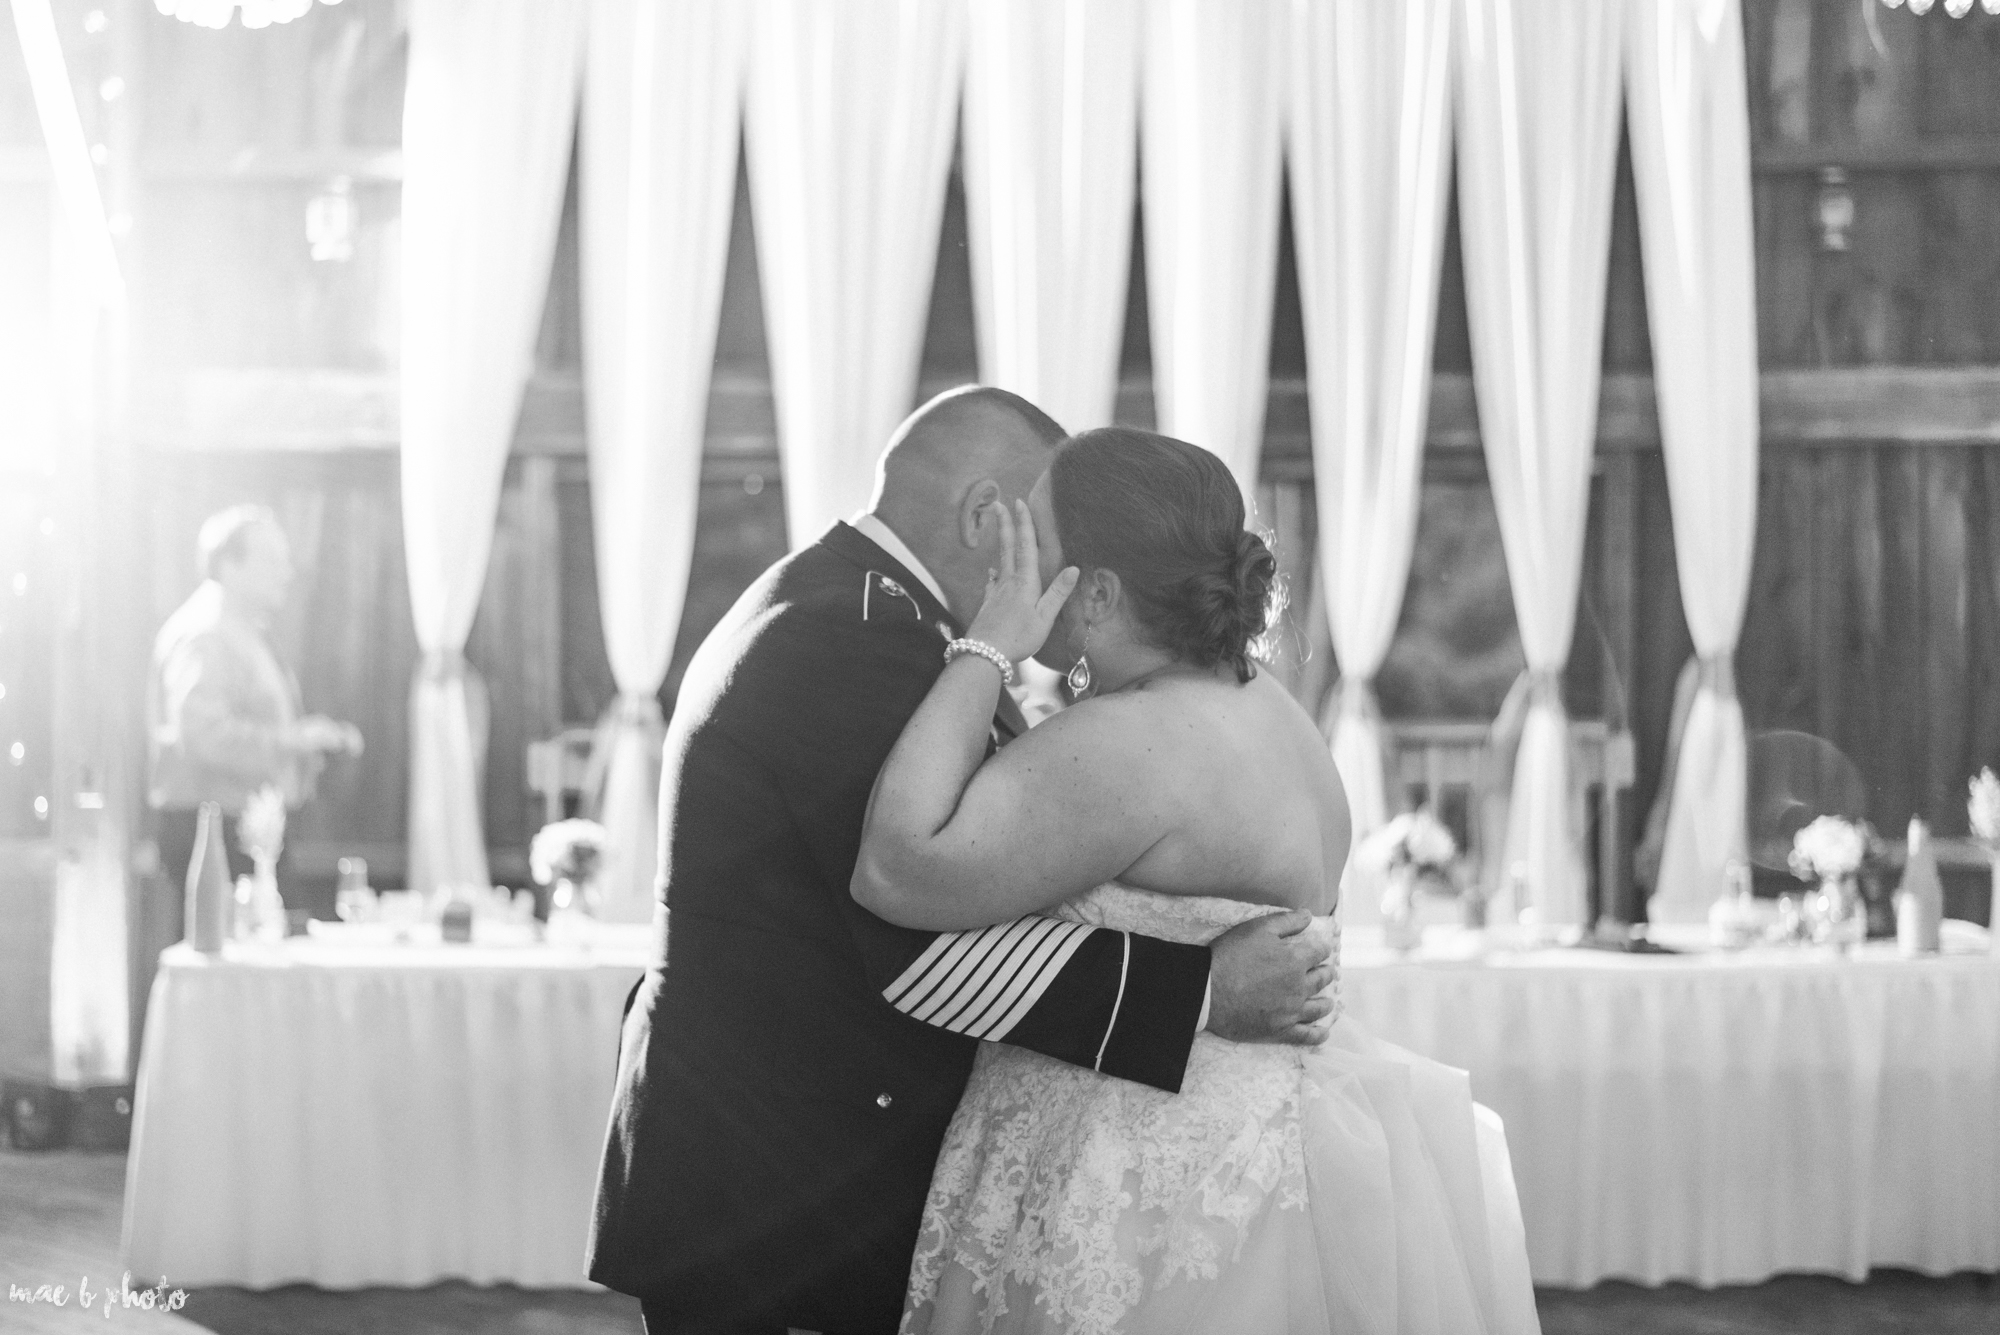 Amber & Kyle's Rustic Barn Wedding at SNPJ in Enon Valley, PA by Mae B Photo-93.jpg